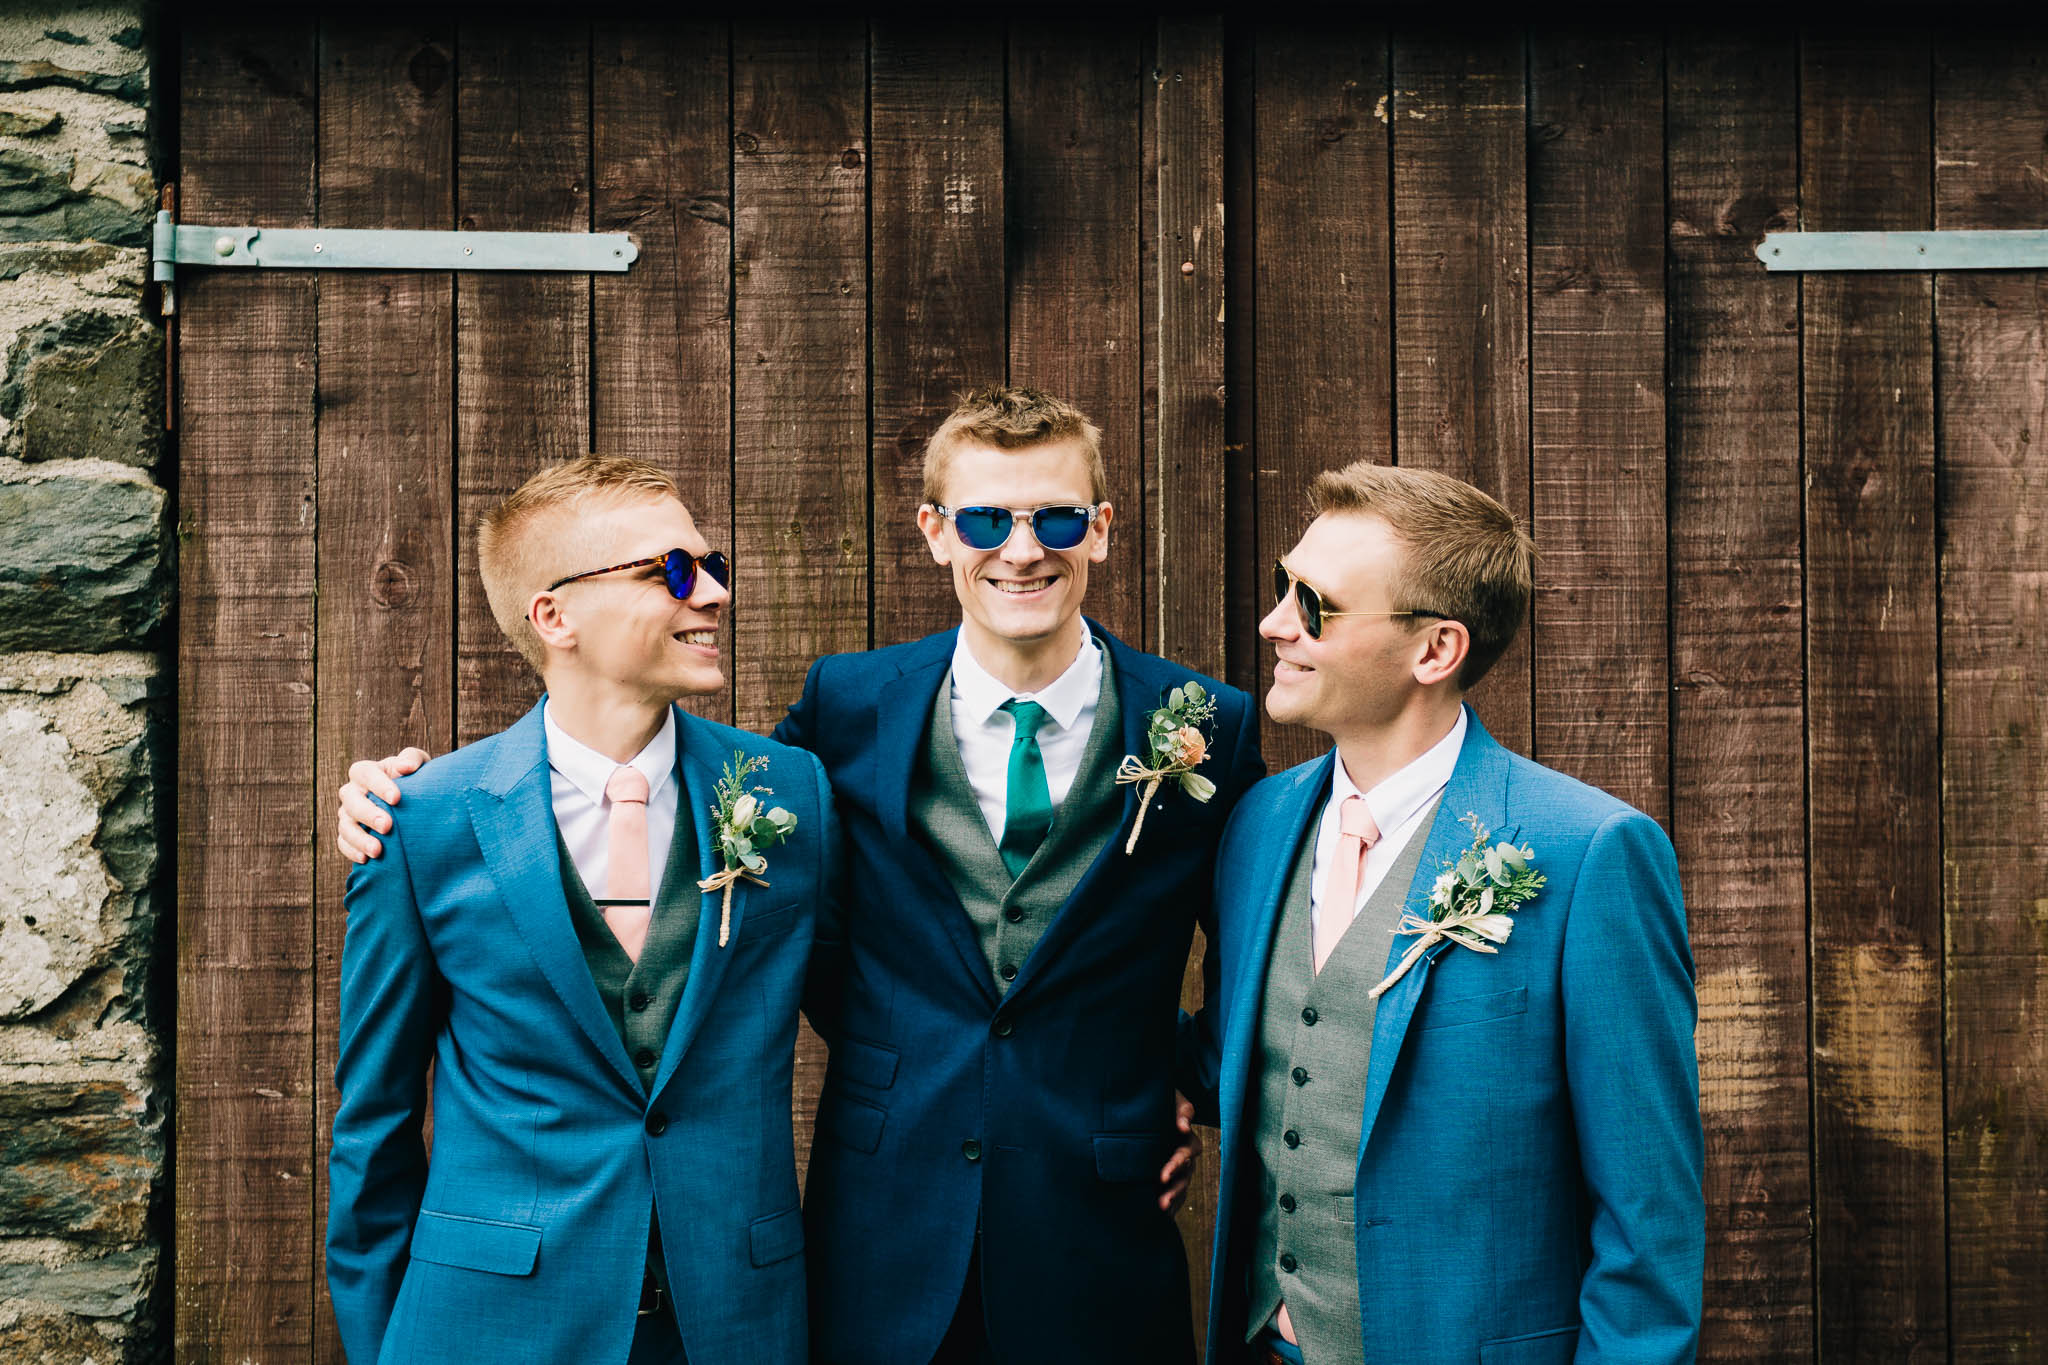 GROOM POSING WITH GROOMSMEN WEARING SUNGLASSES